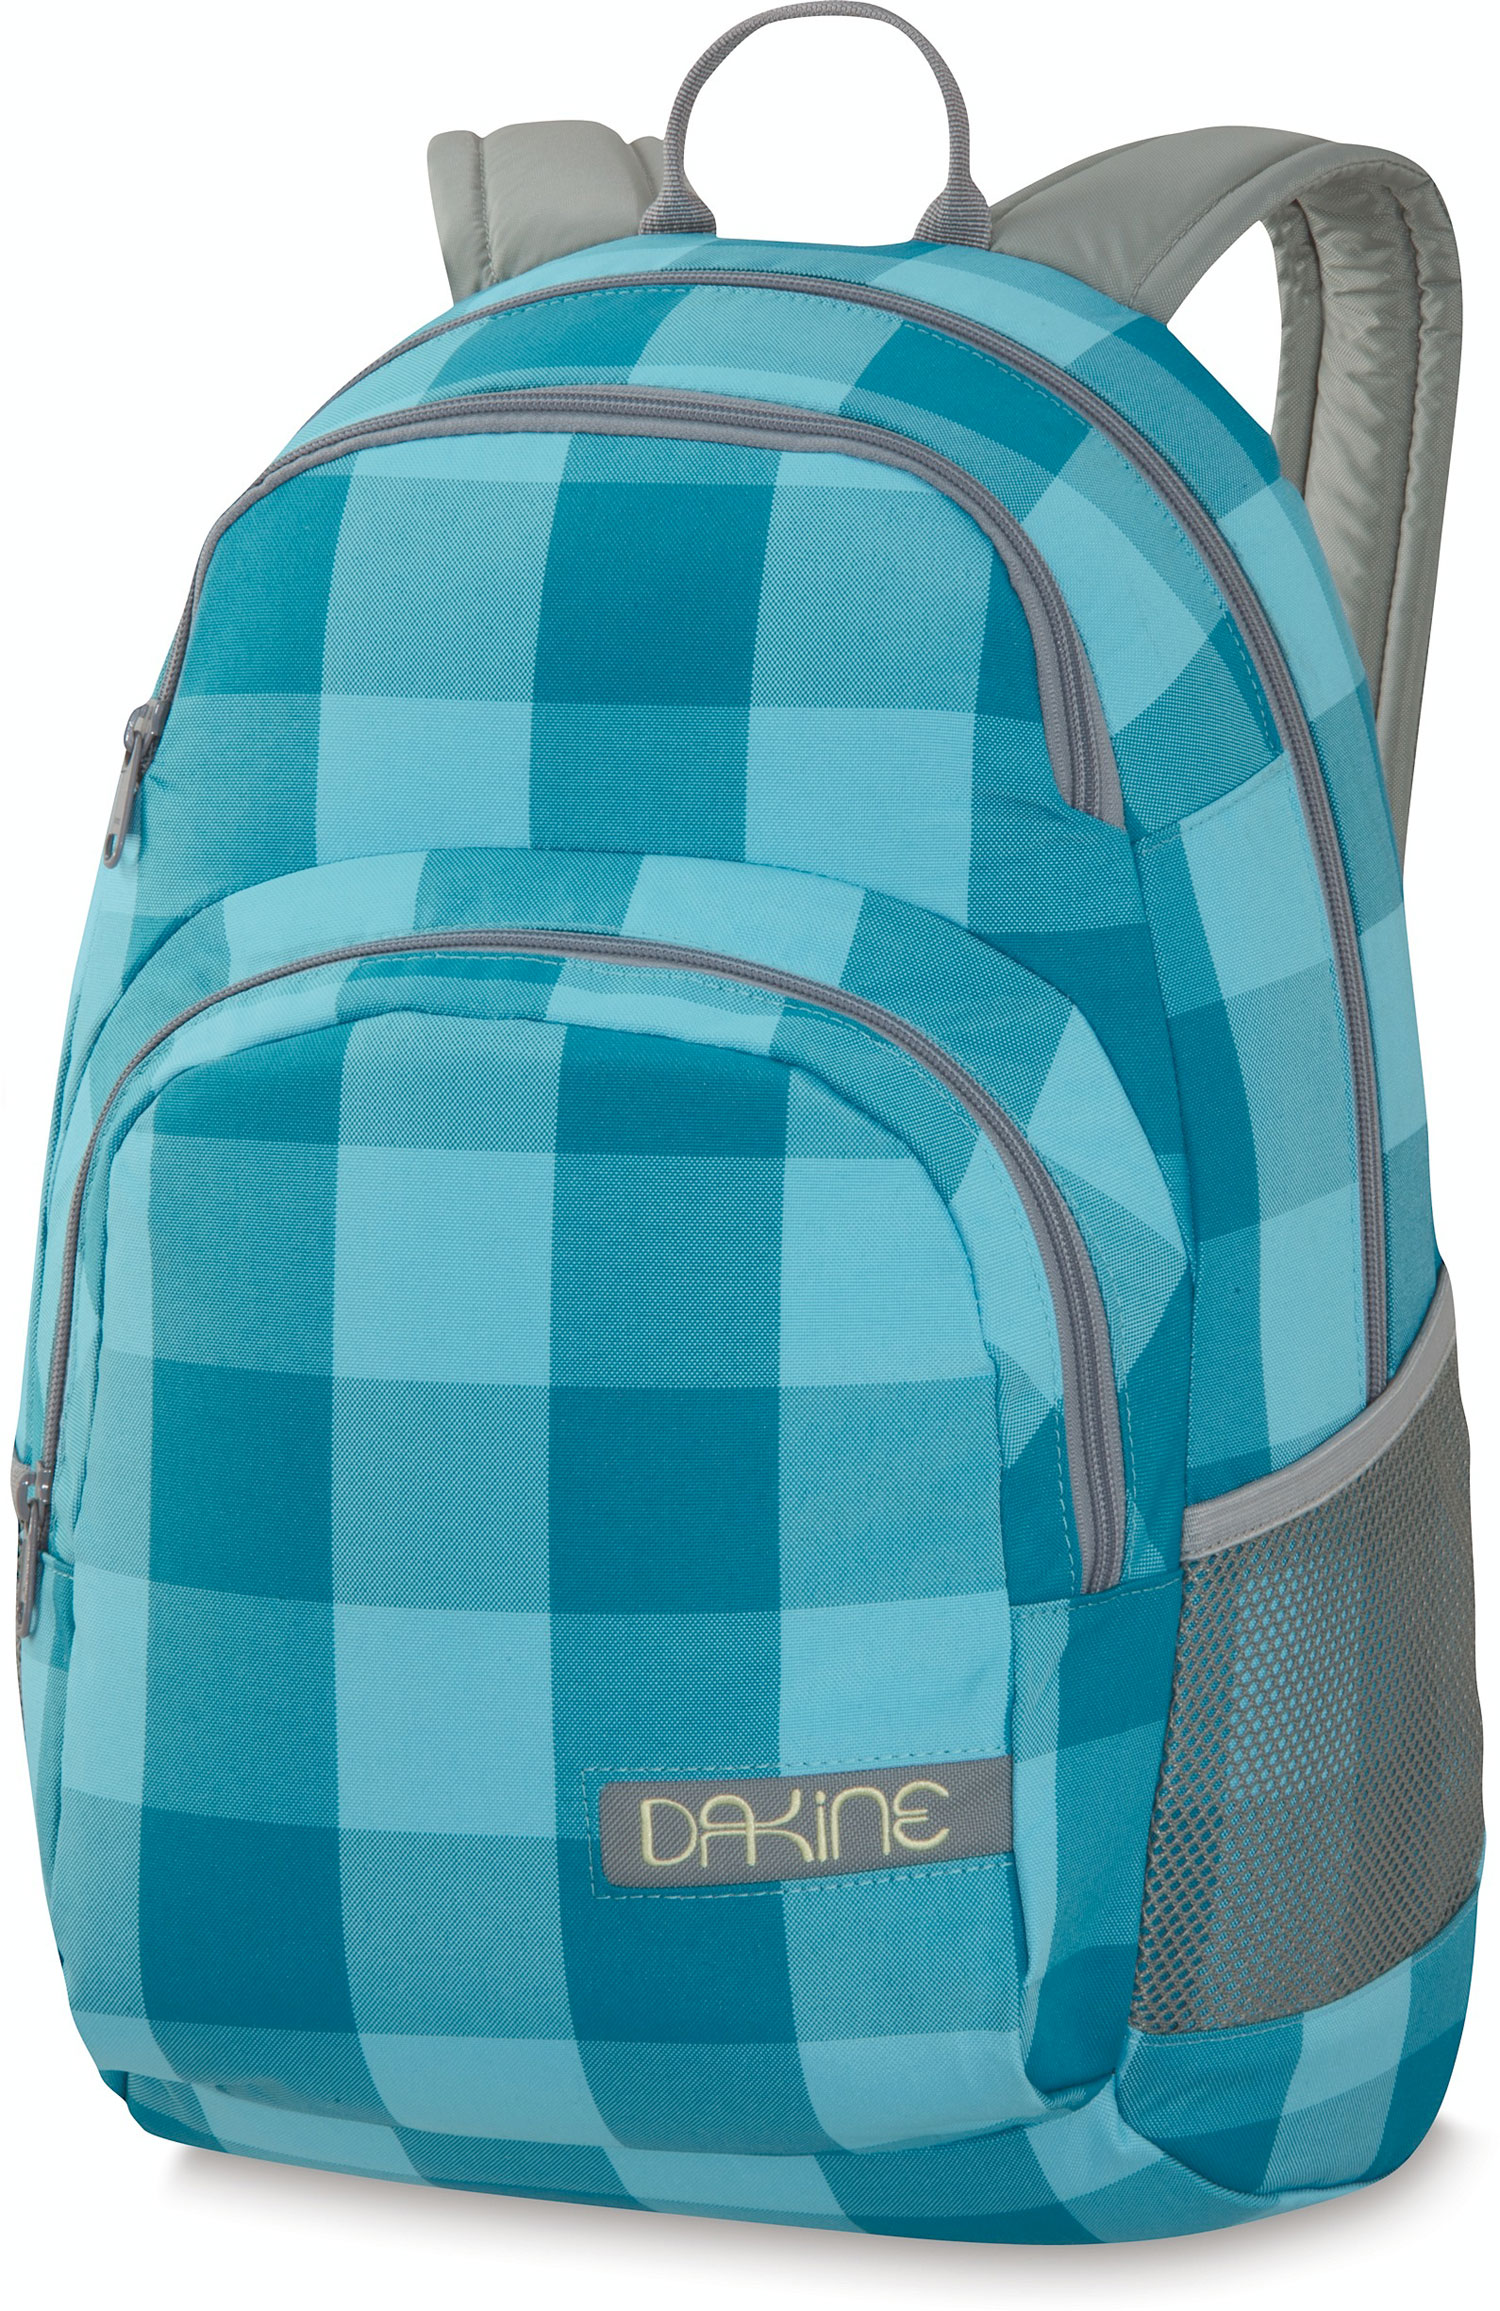 "Surf Key Features of the Dakine Hana 26L Backpack: 1600 cu. in. [ 26L ] 17.5 x 12 x 7.5"" [ 45 x 30 x 19cm ] 600D Polyester Mesh side pockets Fleece lined sunglass pocket - $25.95"